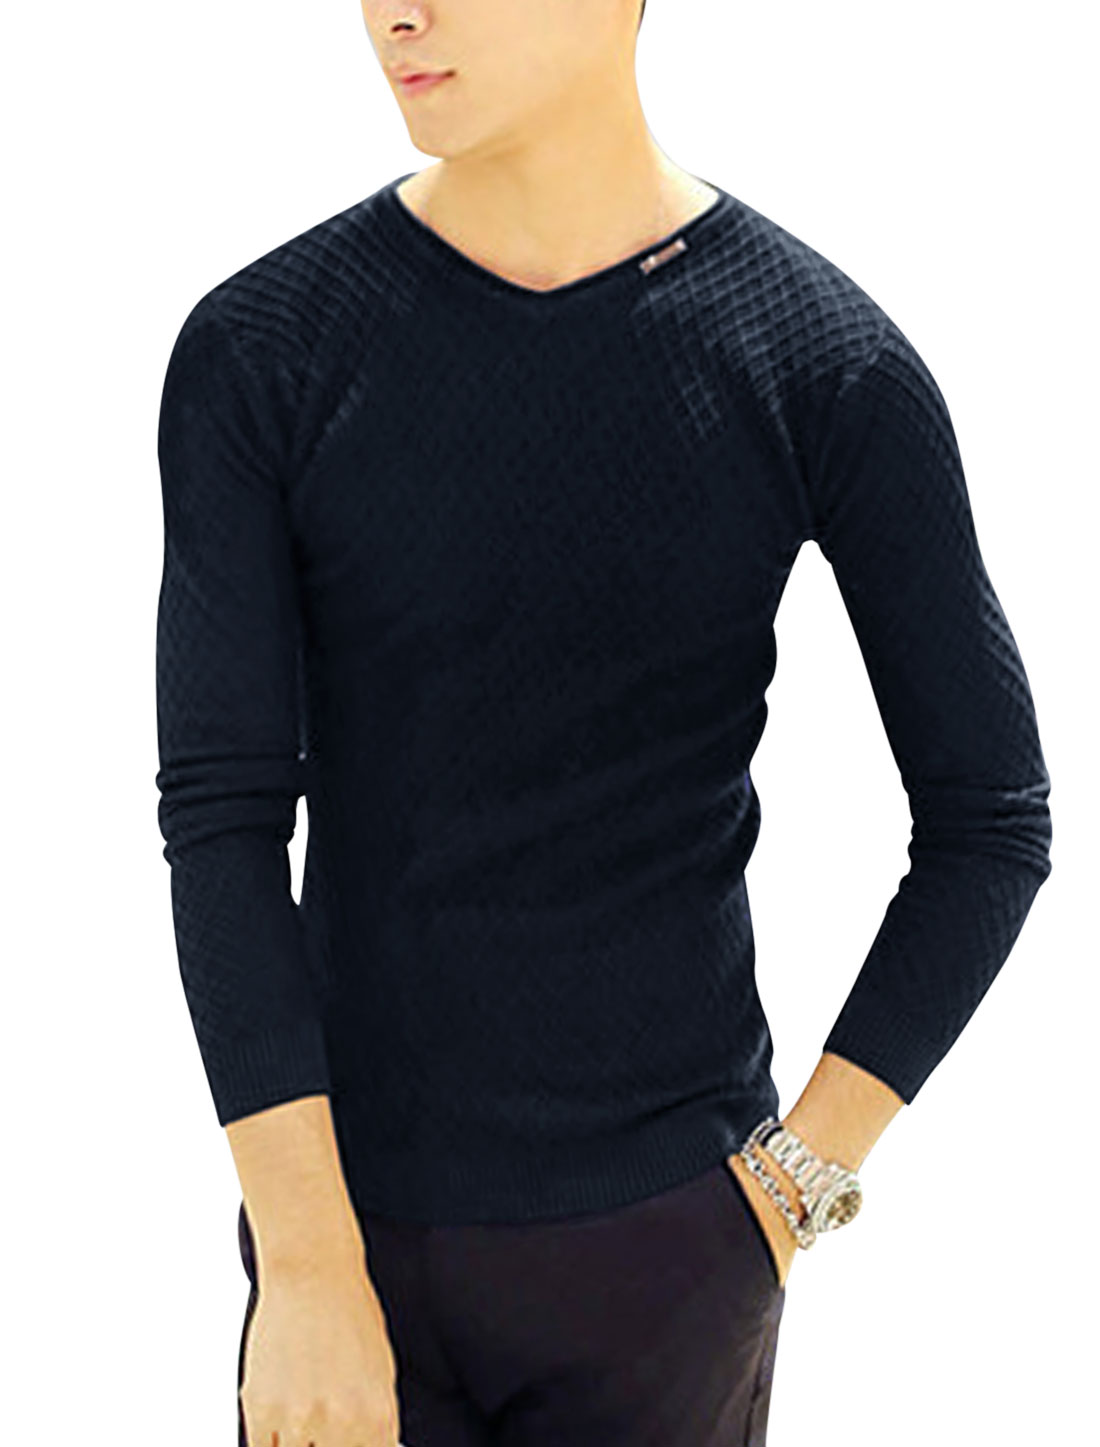 Man Navy Blue Long Sleeves Pullover V Neck Stretchy Knit Shirt S